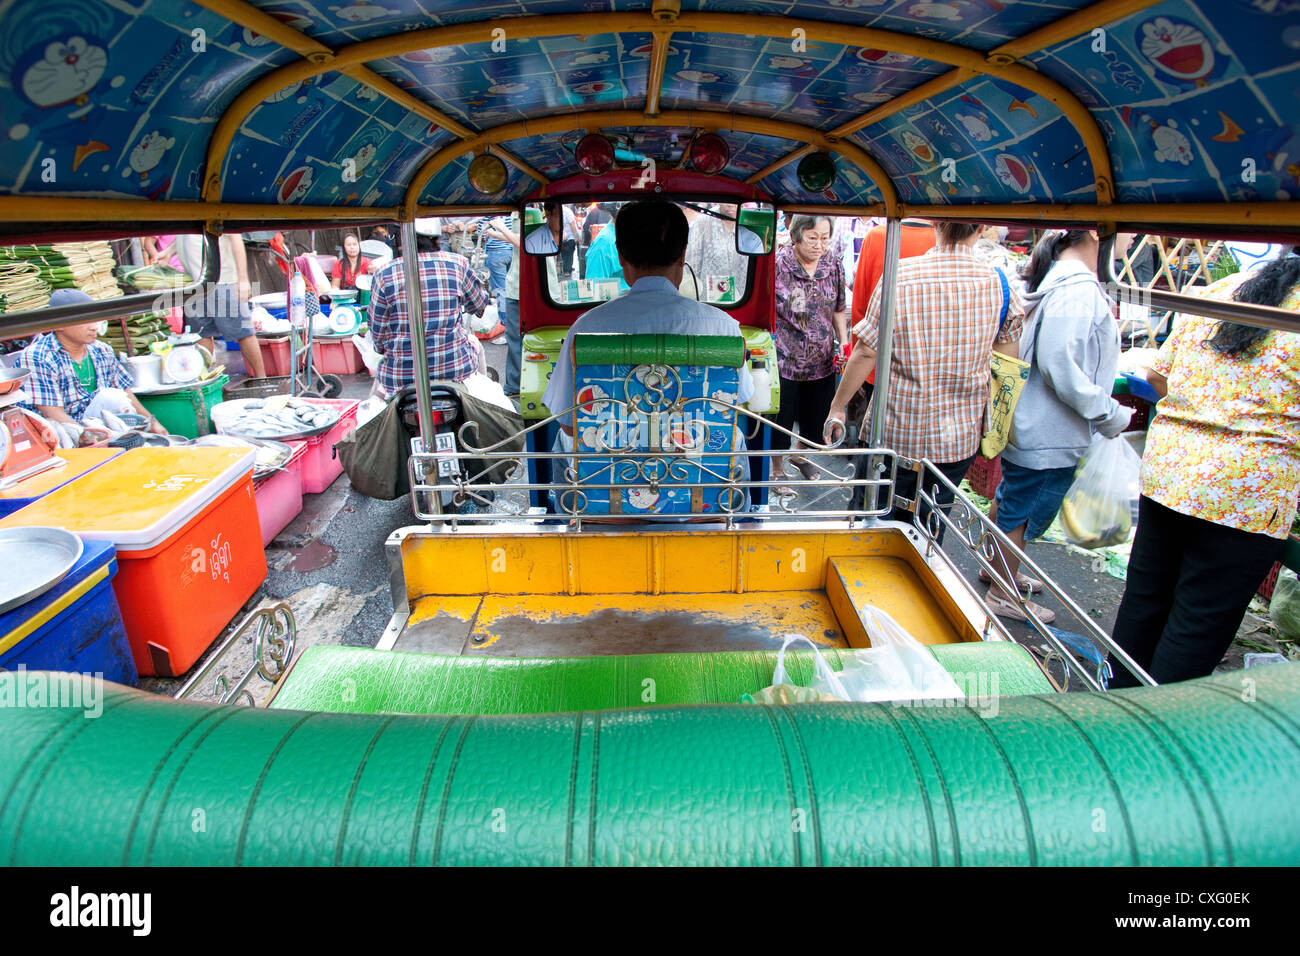 A view looking out from inside a Tut Tut in the market Bangkok Thailand - Stock Image